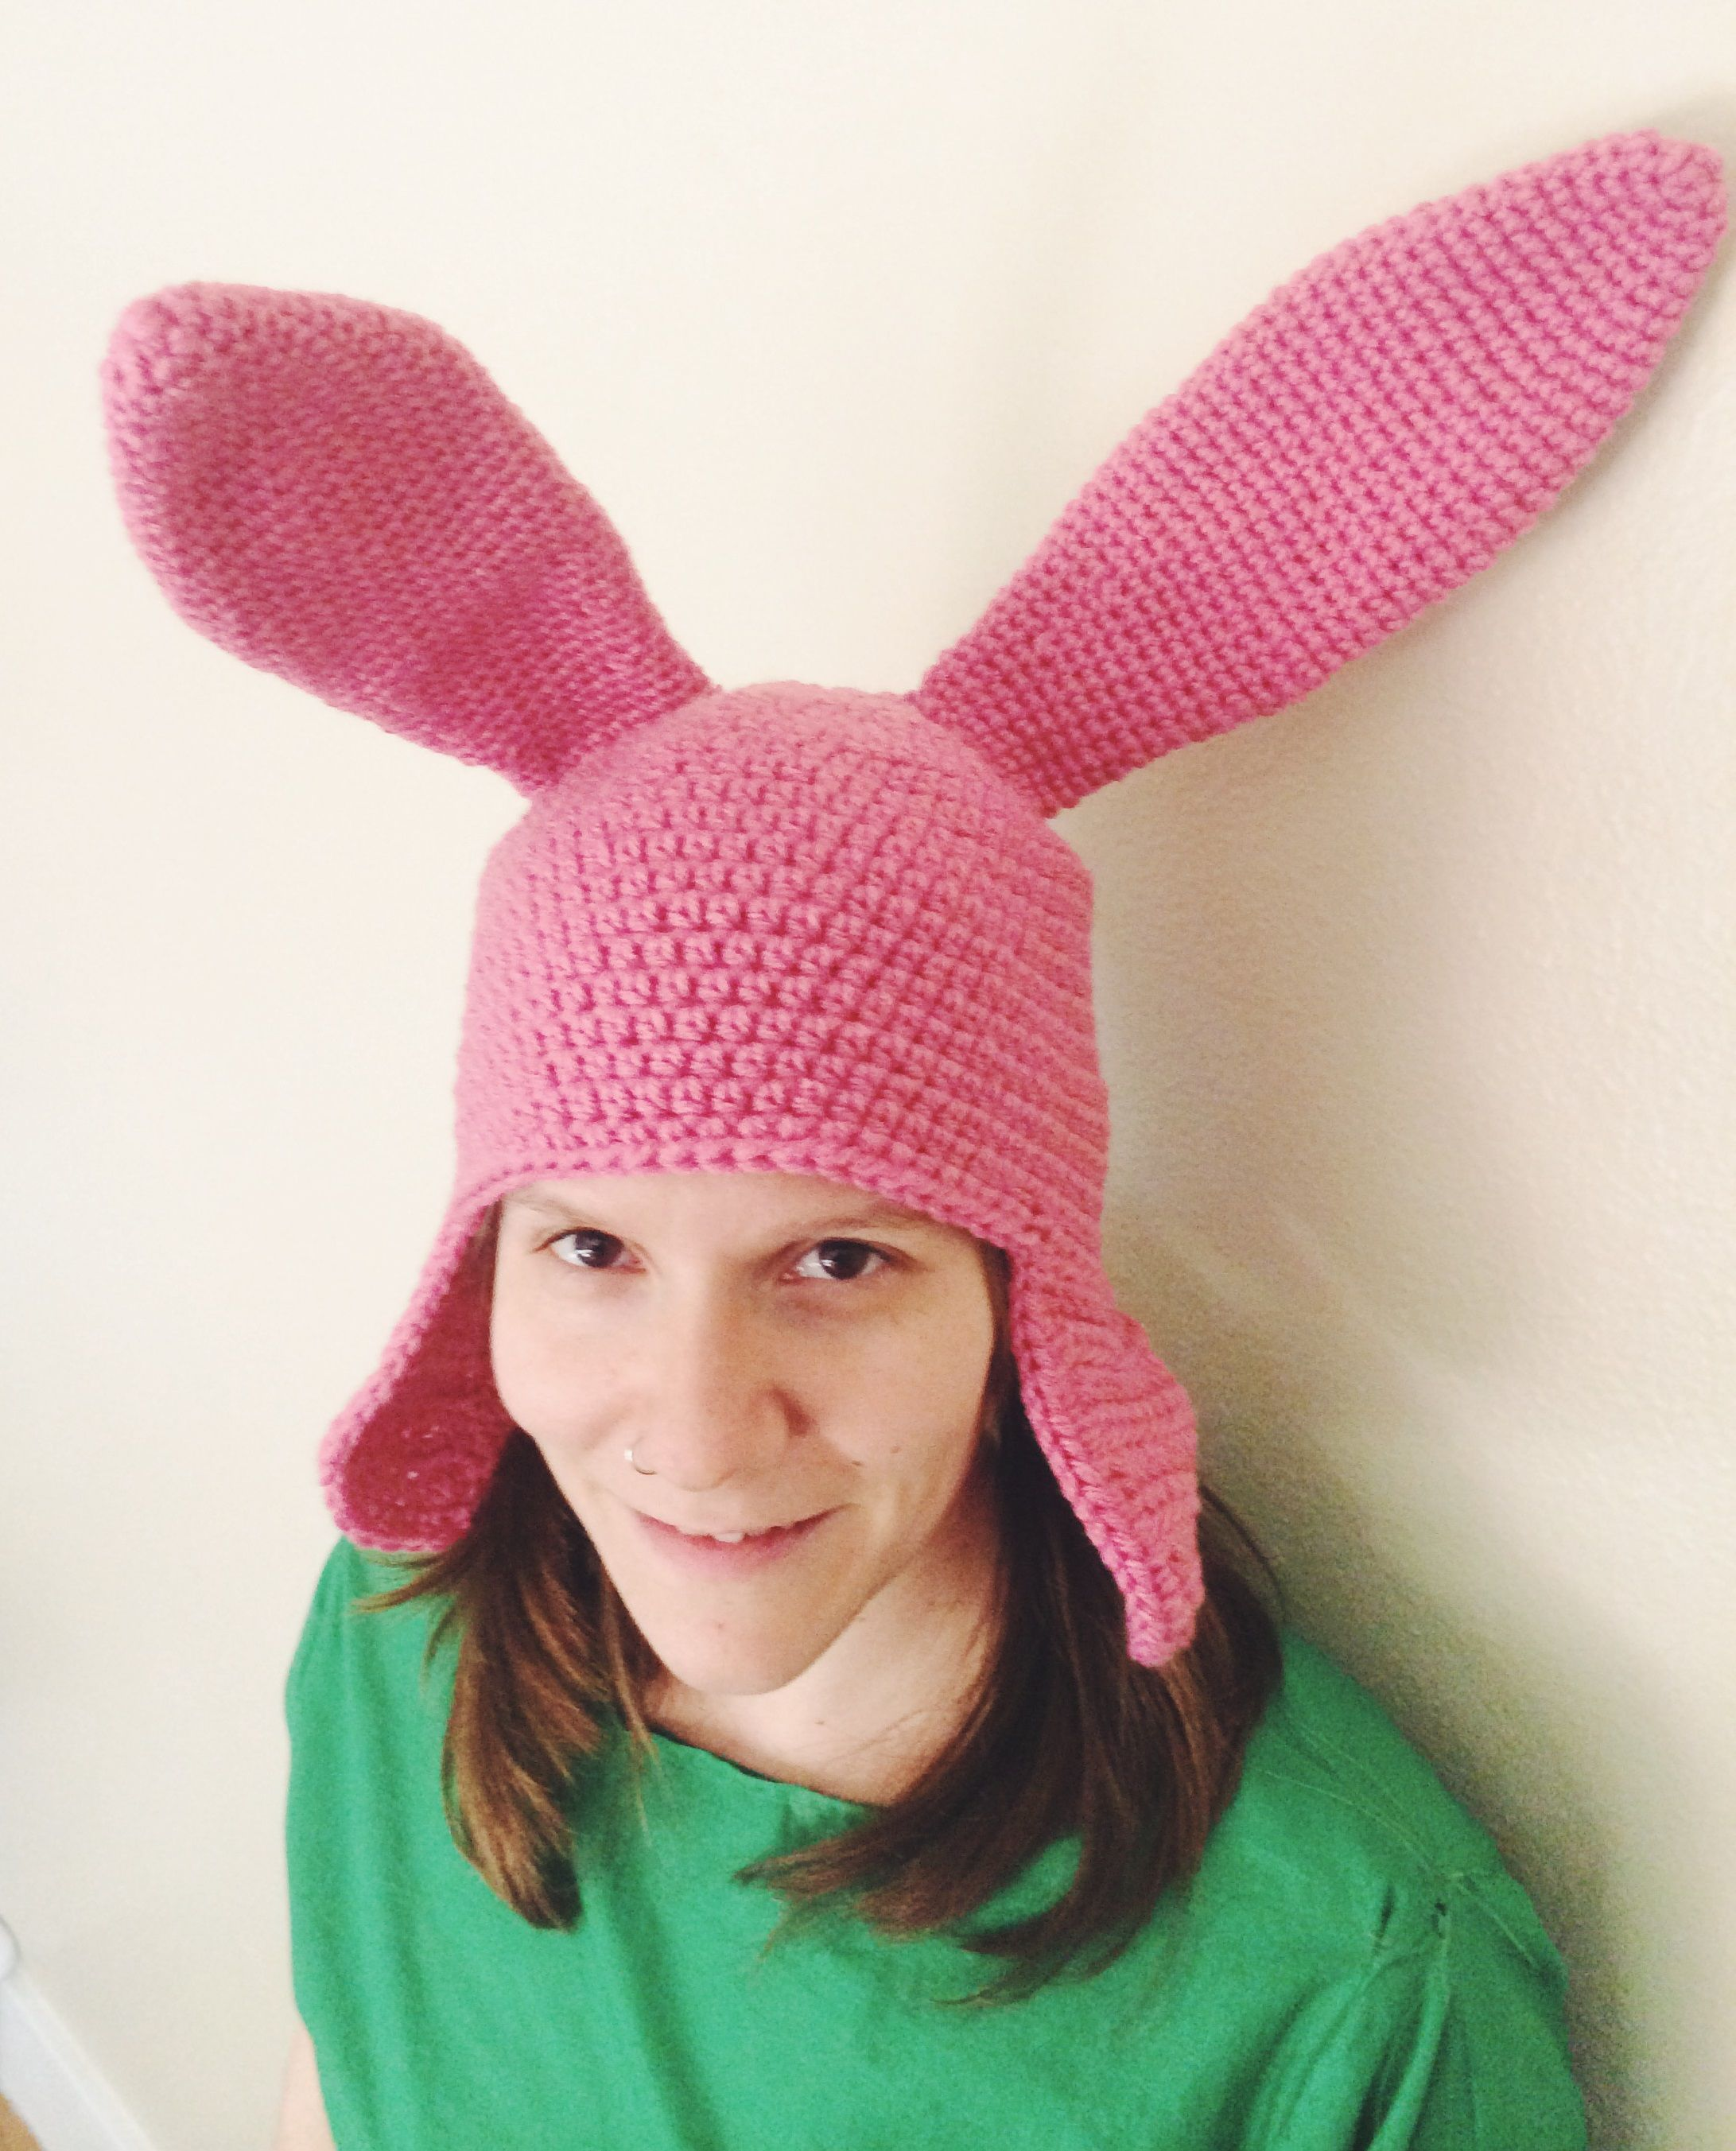 Make your own louise belcher halloween costume with this tutorial make your own louise belcher halloween costume with this tutorial and hat pattern bankloansurffo Image collections